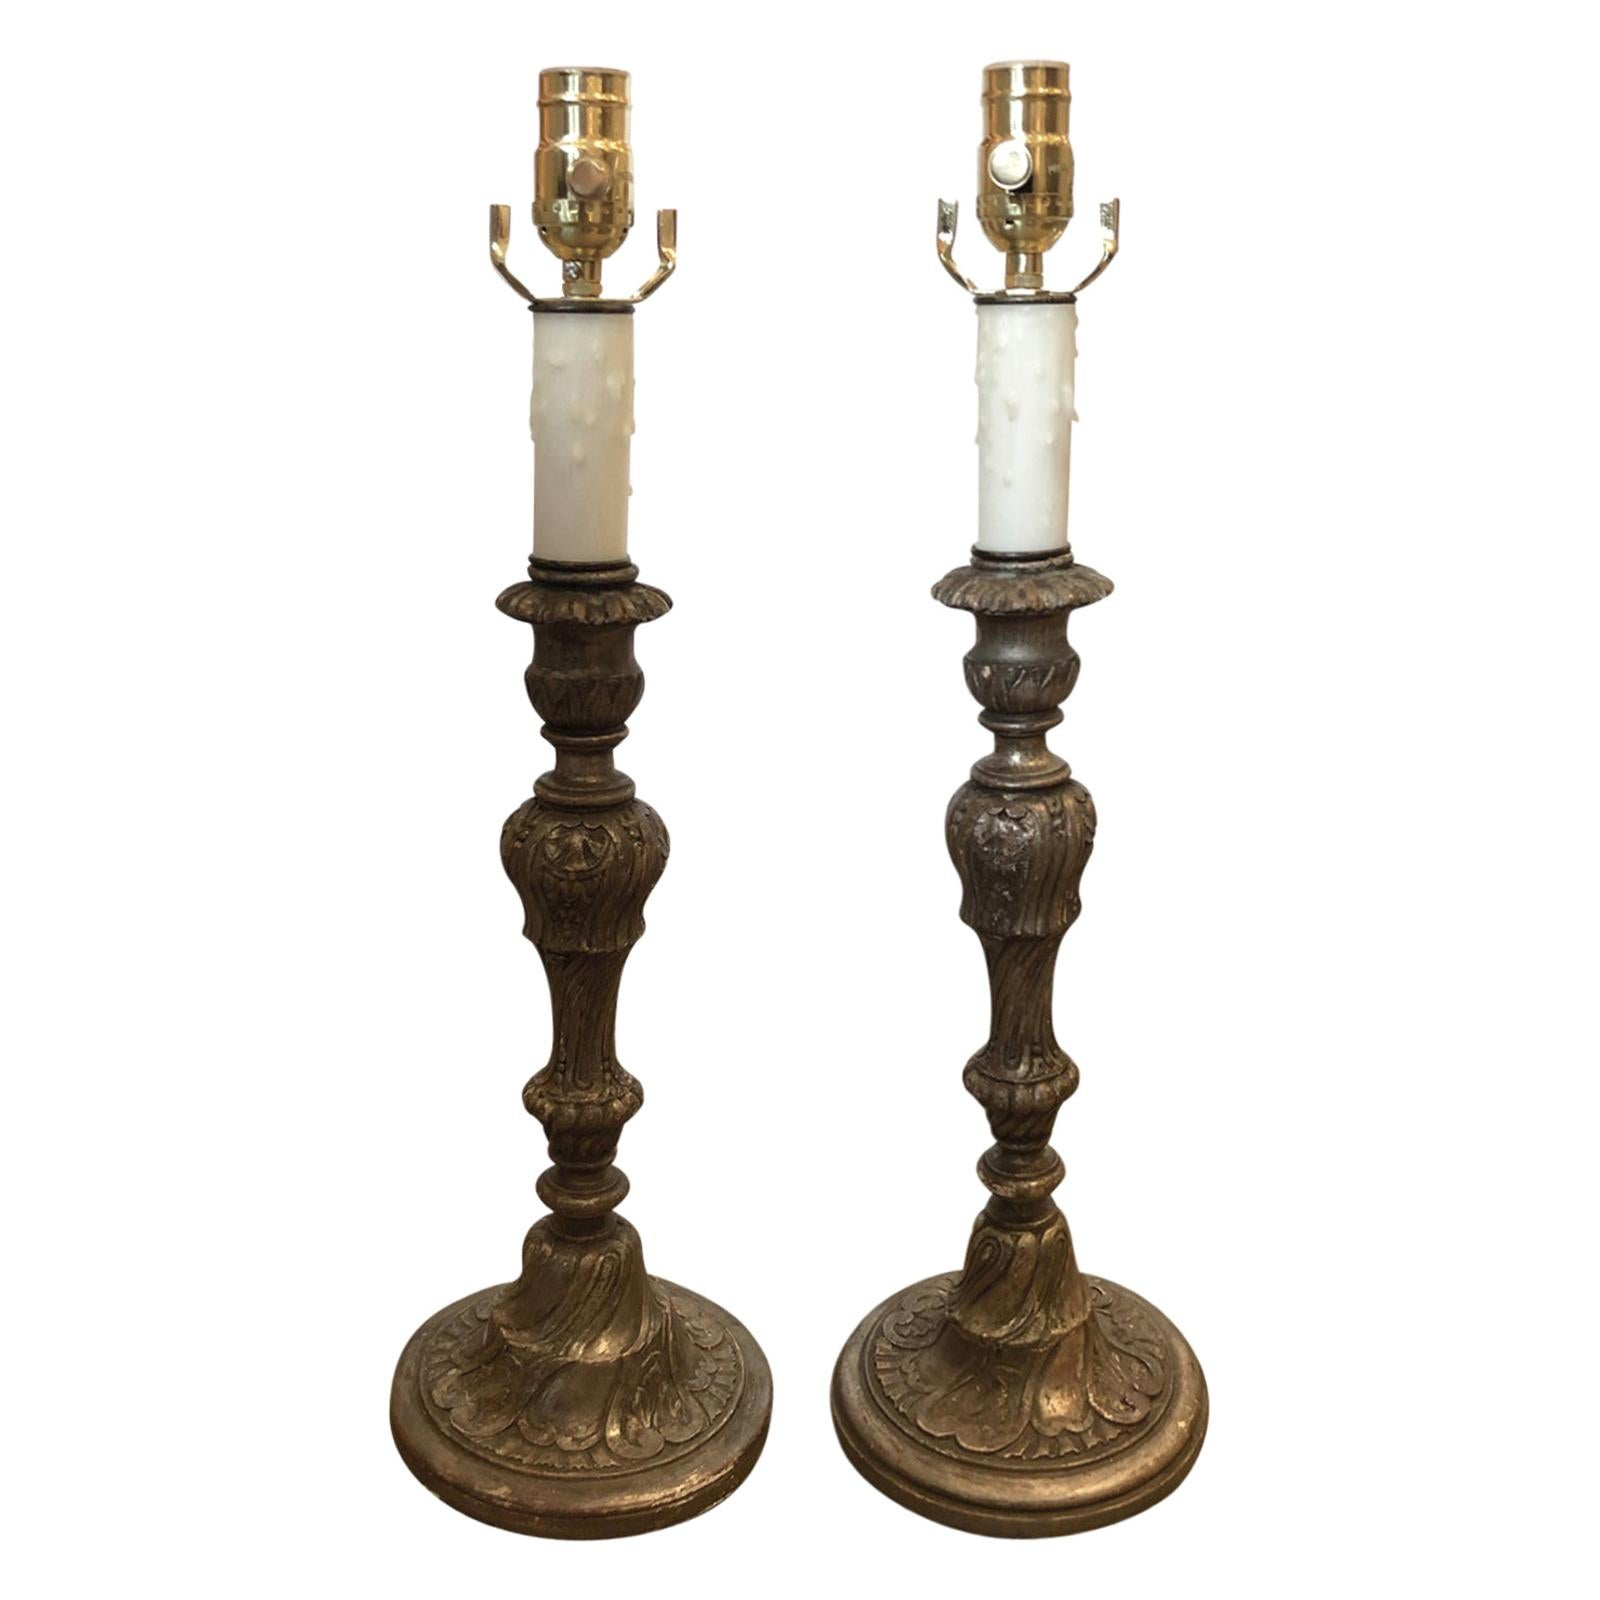 Pair of Early 20th Century Italian Silver Gilt Candlestick Lamps